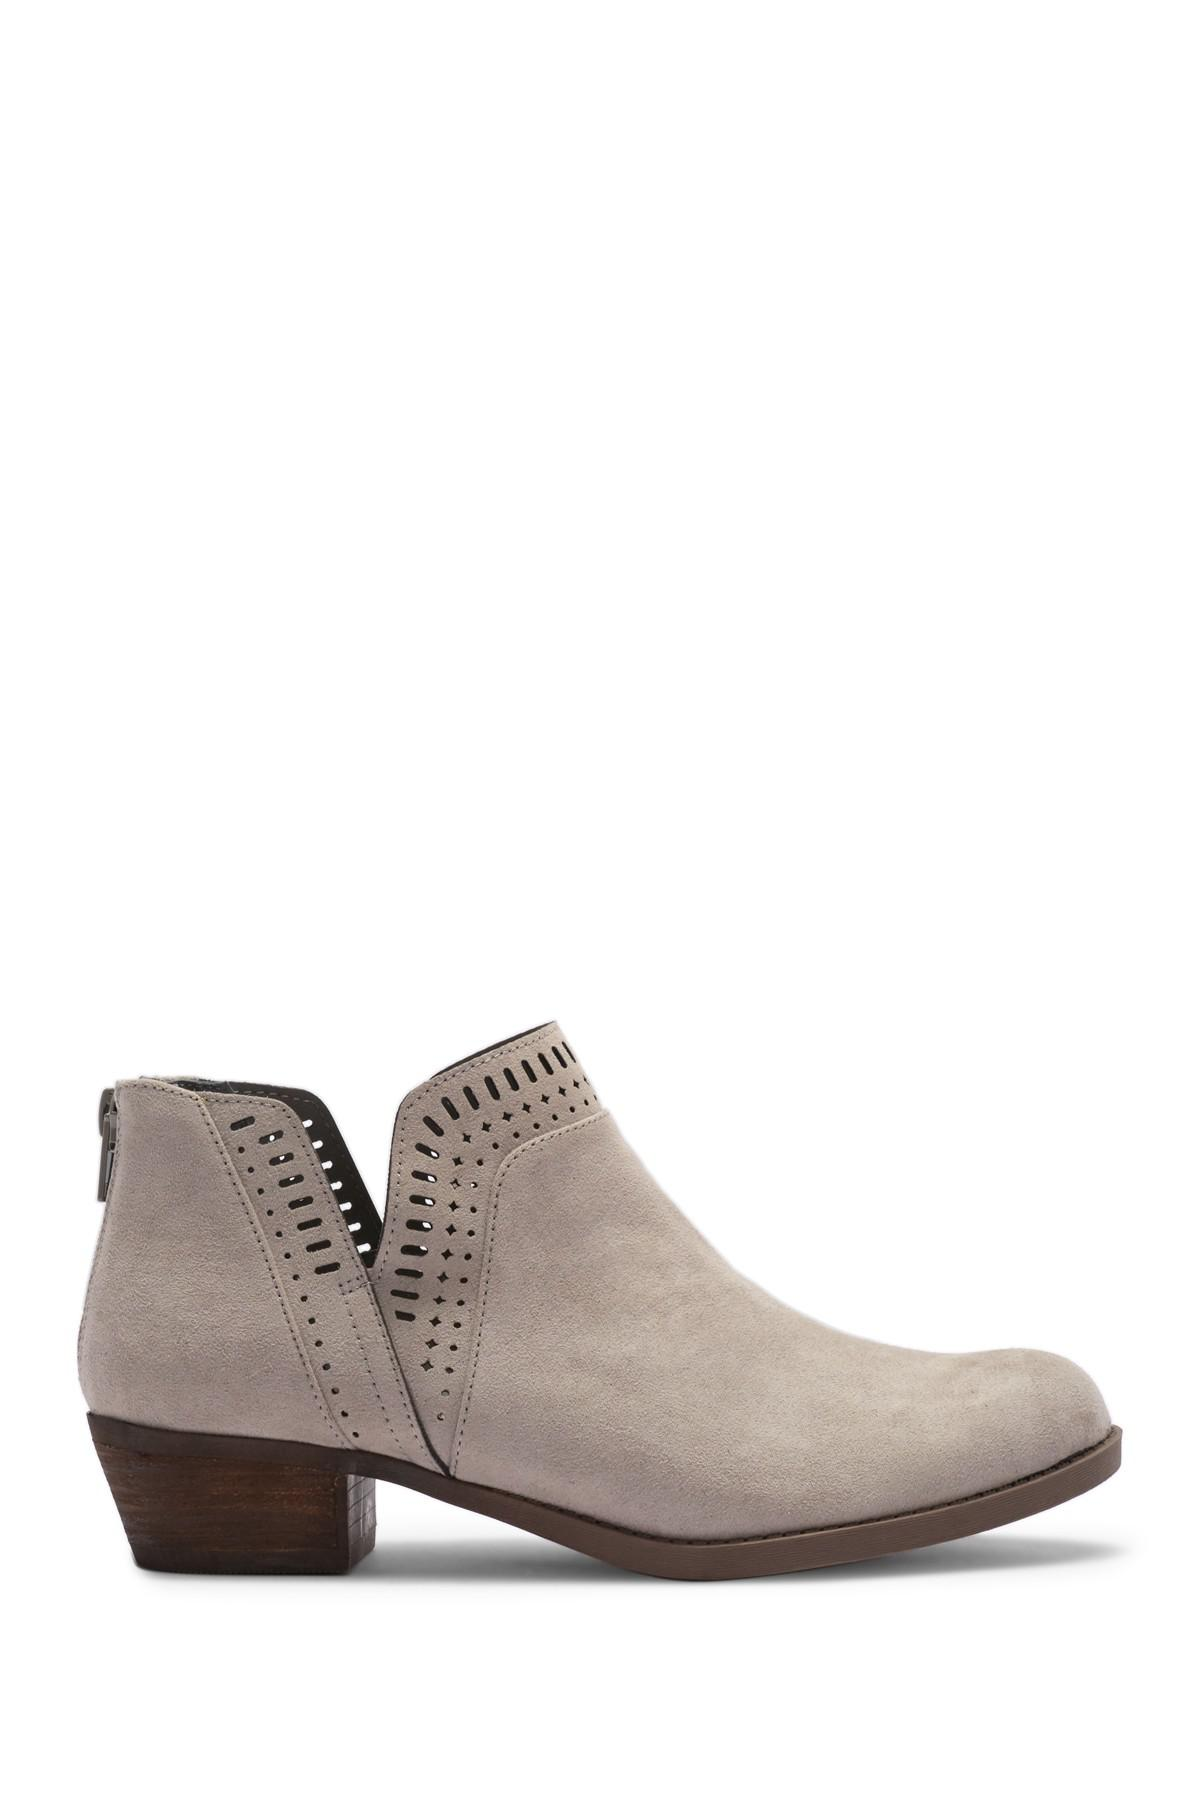 52c1cb115a6 Carlos By Carlos Santana - Brown Billey Perforated Ankle Bootie - Lyst.  View fullscreen